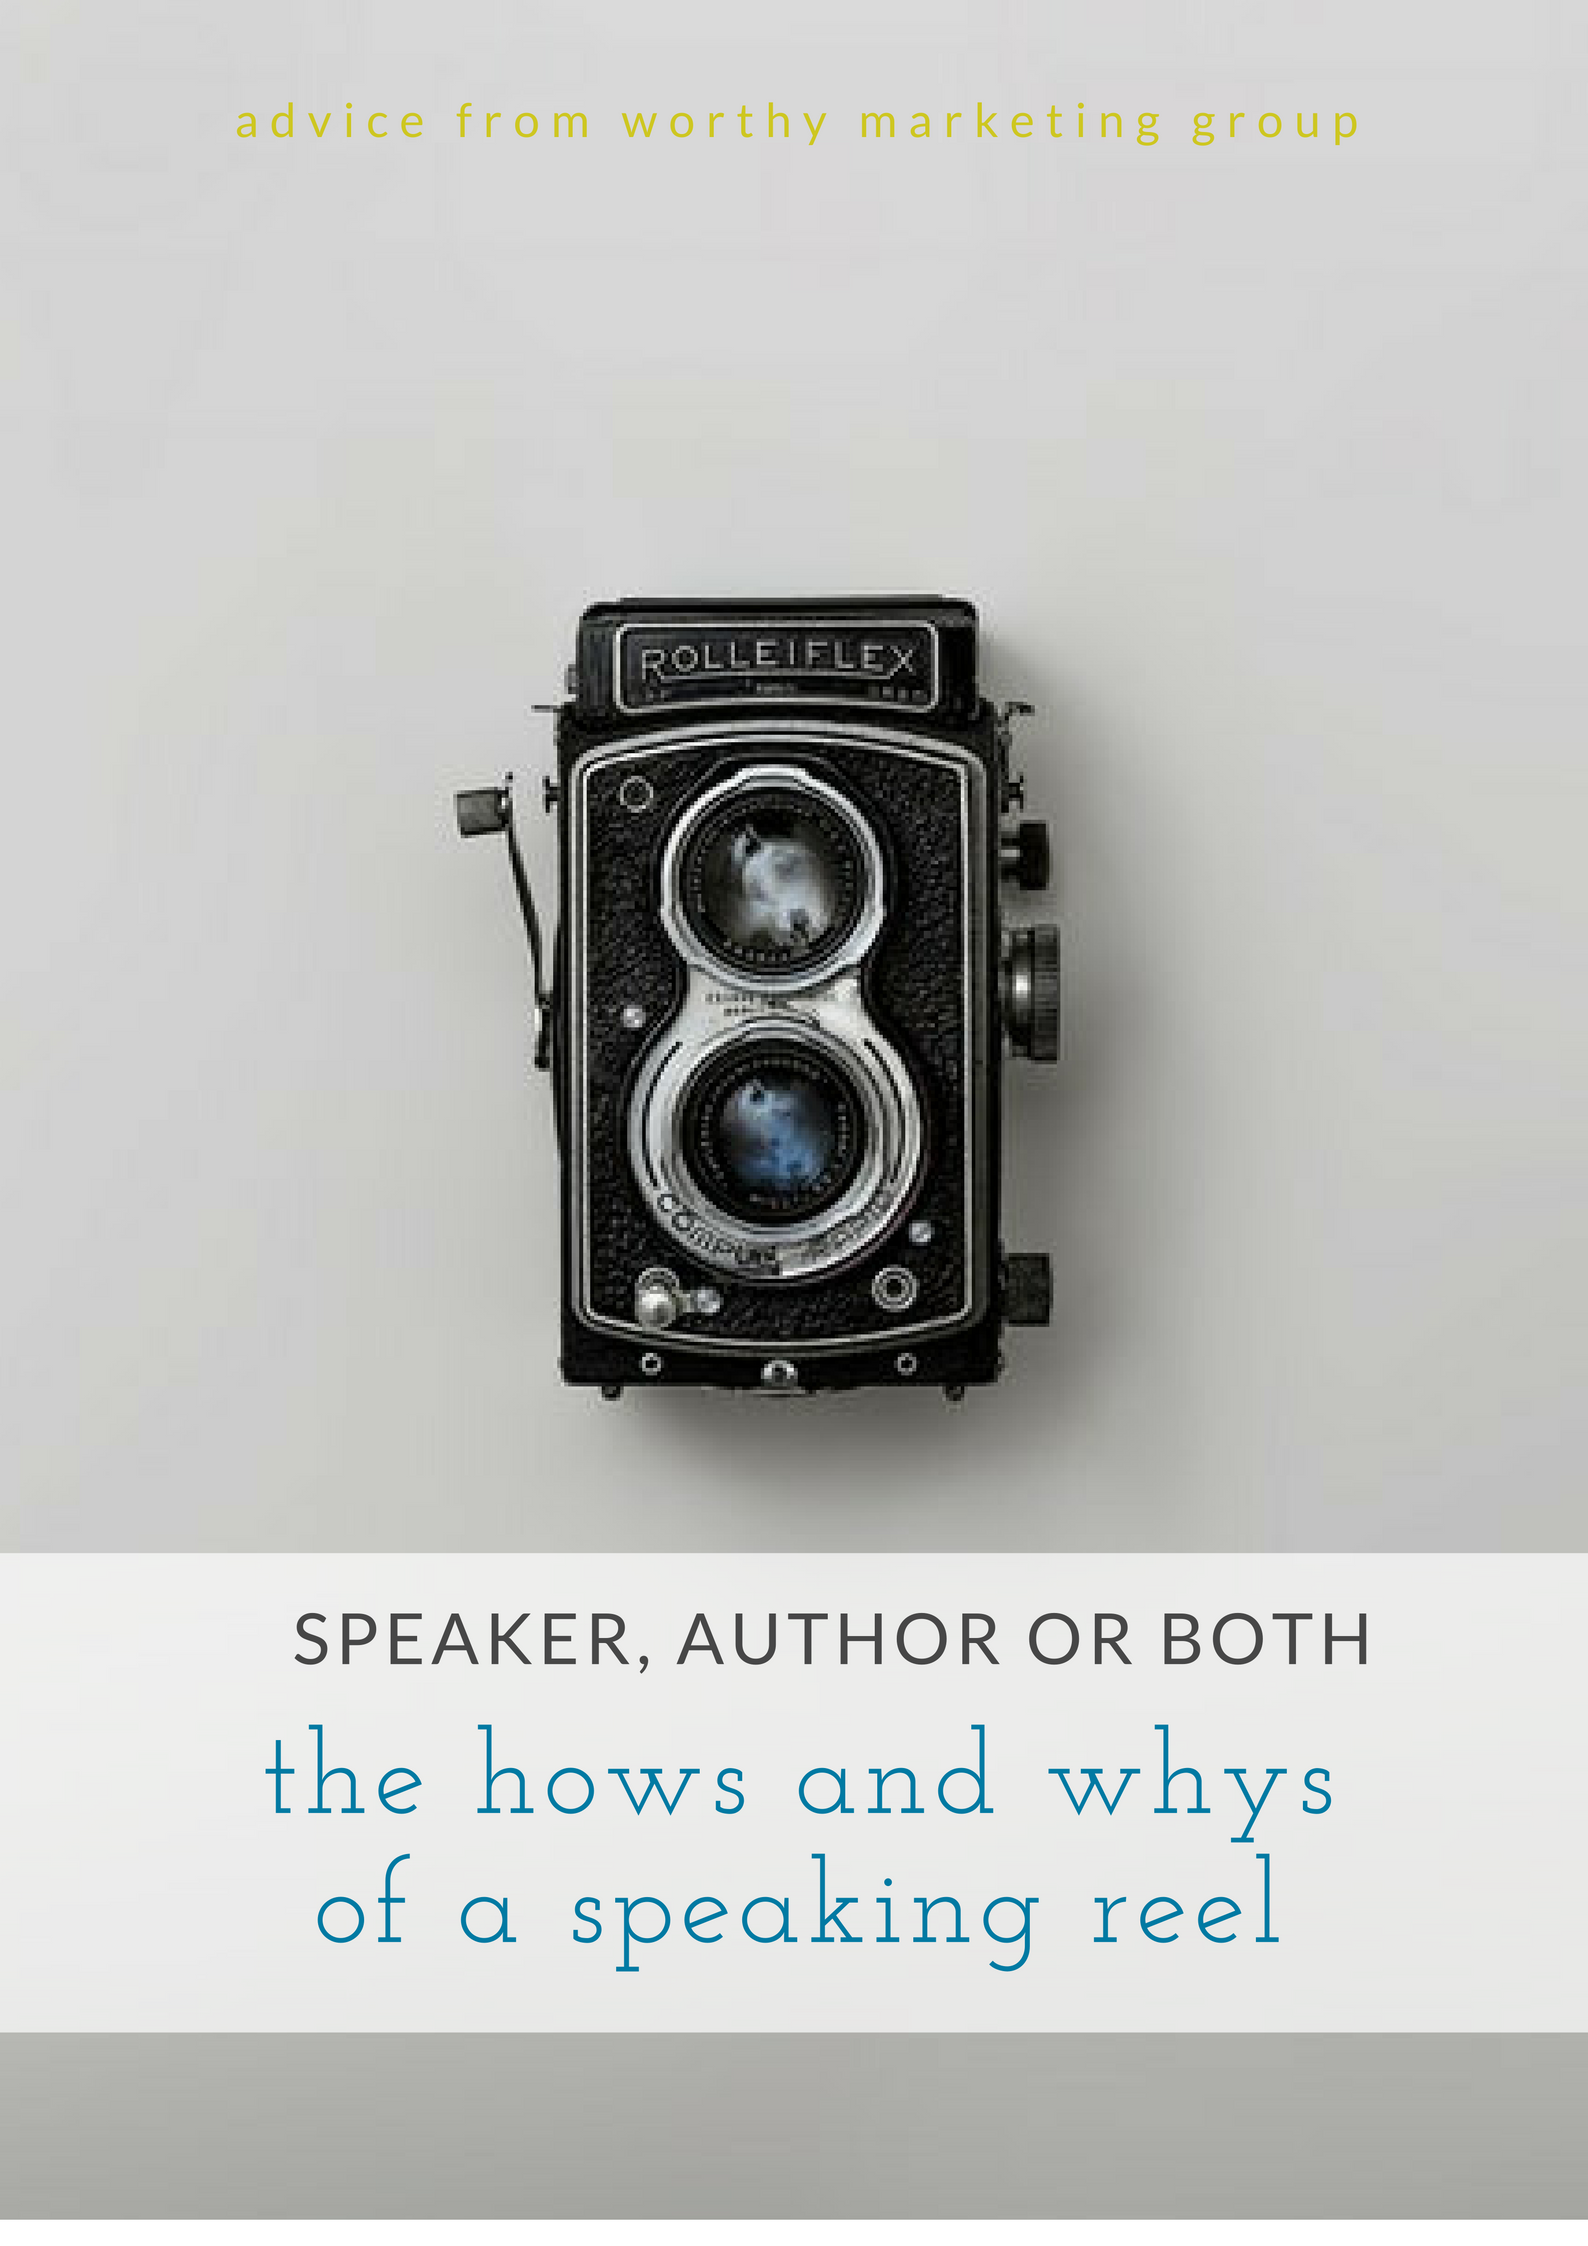 Speaker, Author, or Both: The Hows and Whys of a Speaking Reel (part 1) | The Worthy Marketing Group Blog